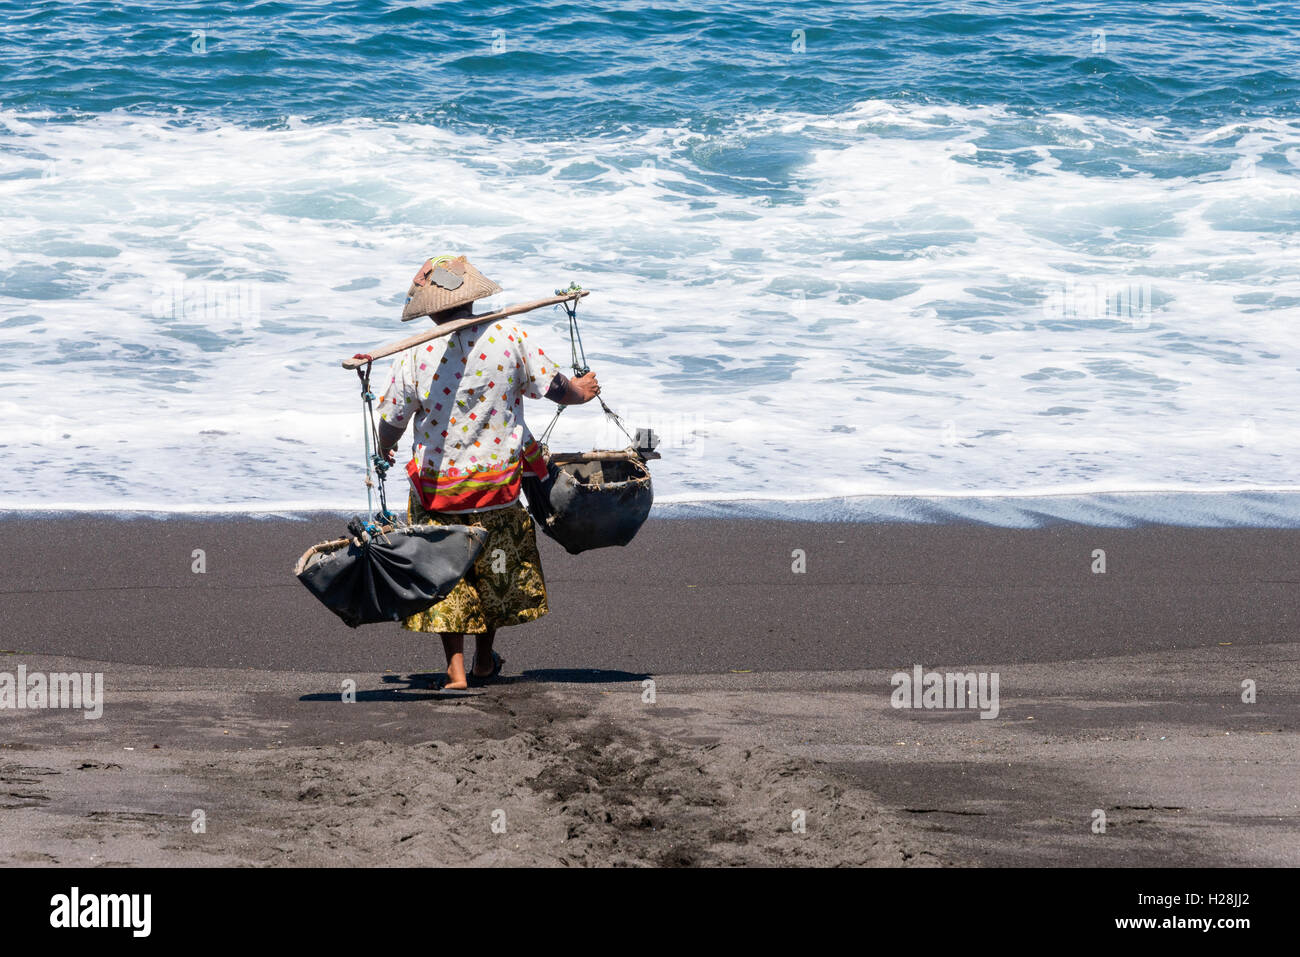 Woman carrying a teku-teku to collect sea water that later will be splashed on the sand to extract the salt. - Stock Image